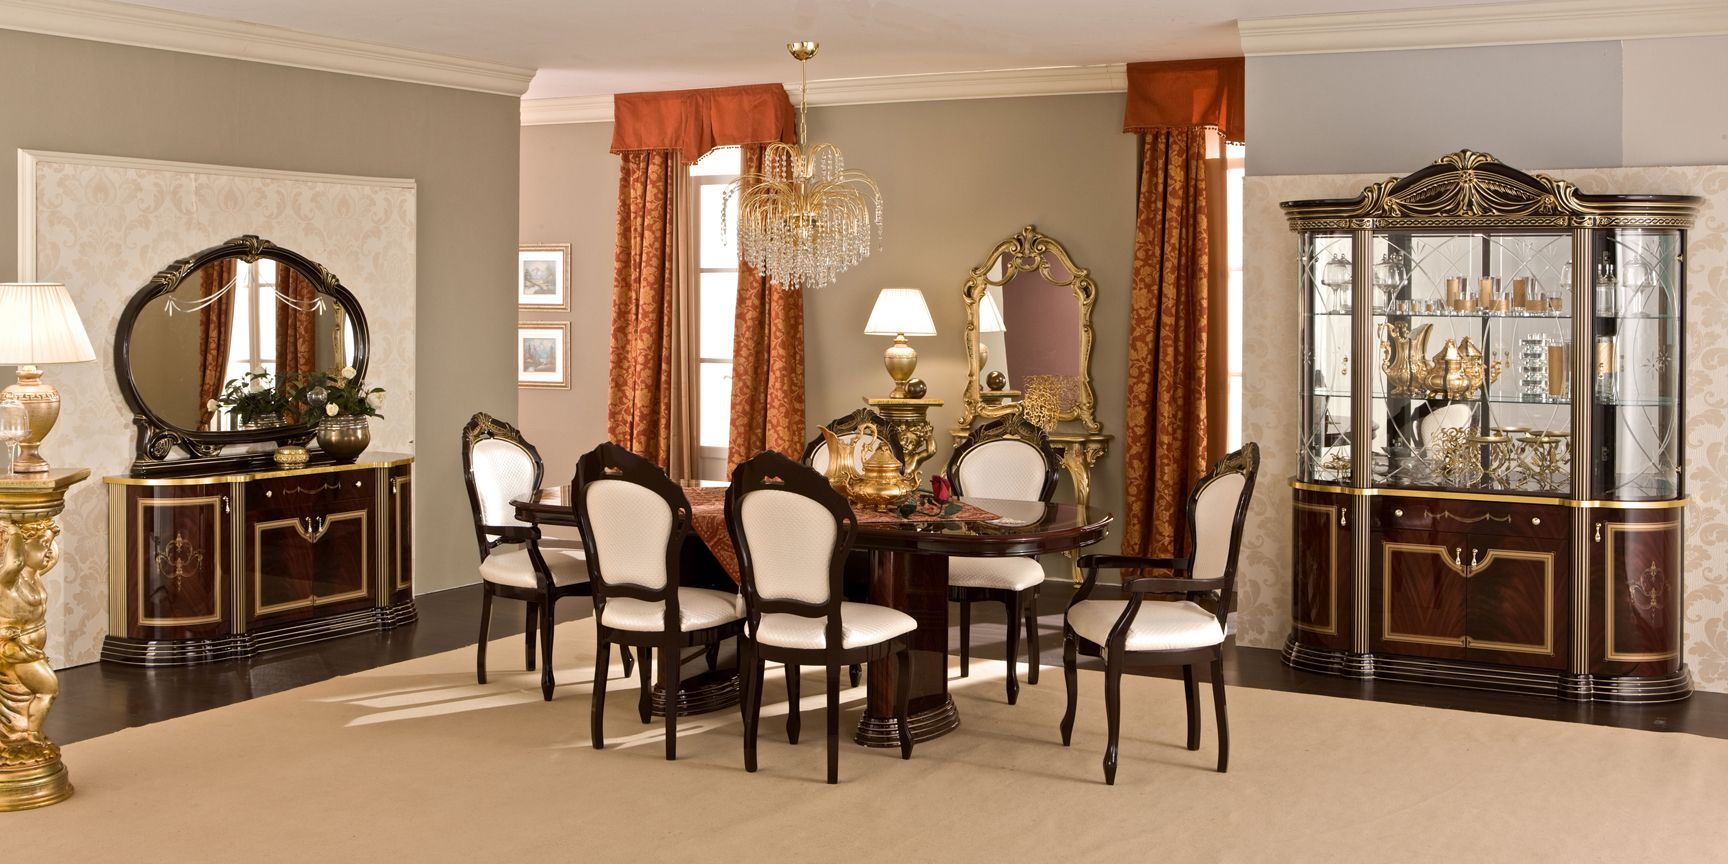 Mahogany Dining Room Furniture A Timeless Beauty With An Imperial Look Minimalist Dining Room Dining Room Furniture Modern Wooden Dining Room Furniture